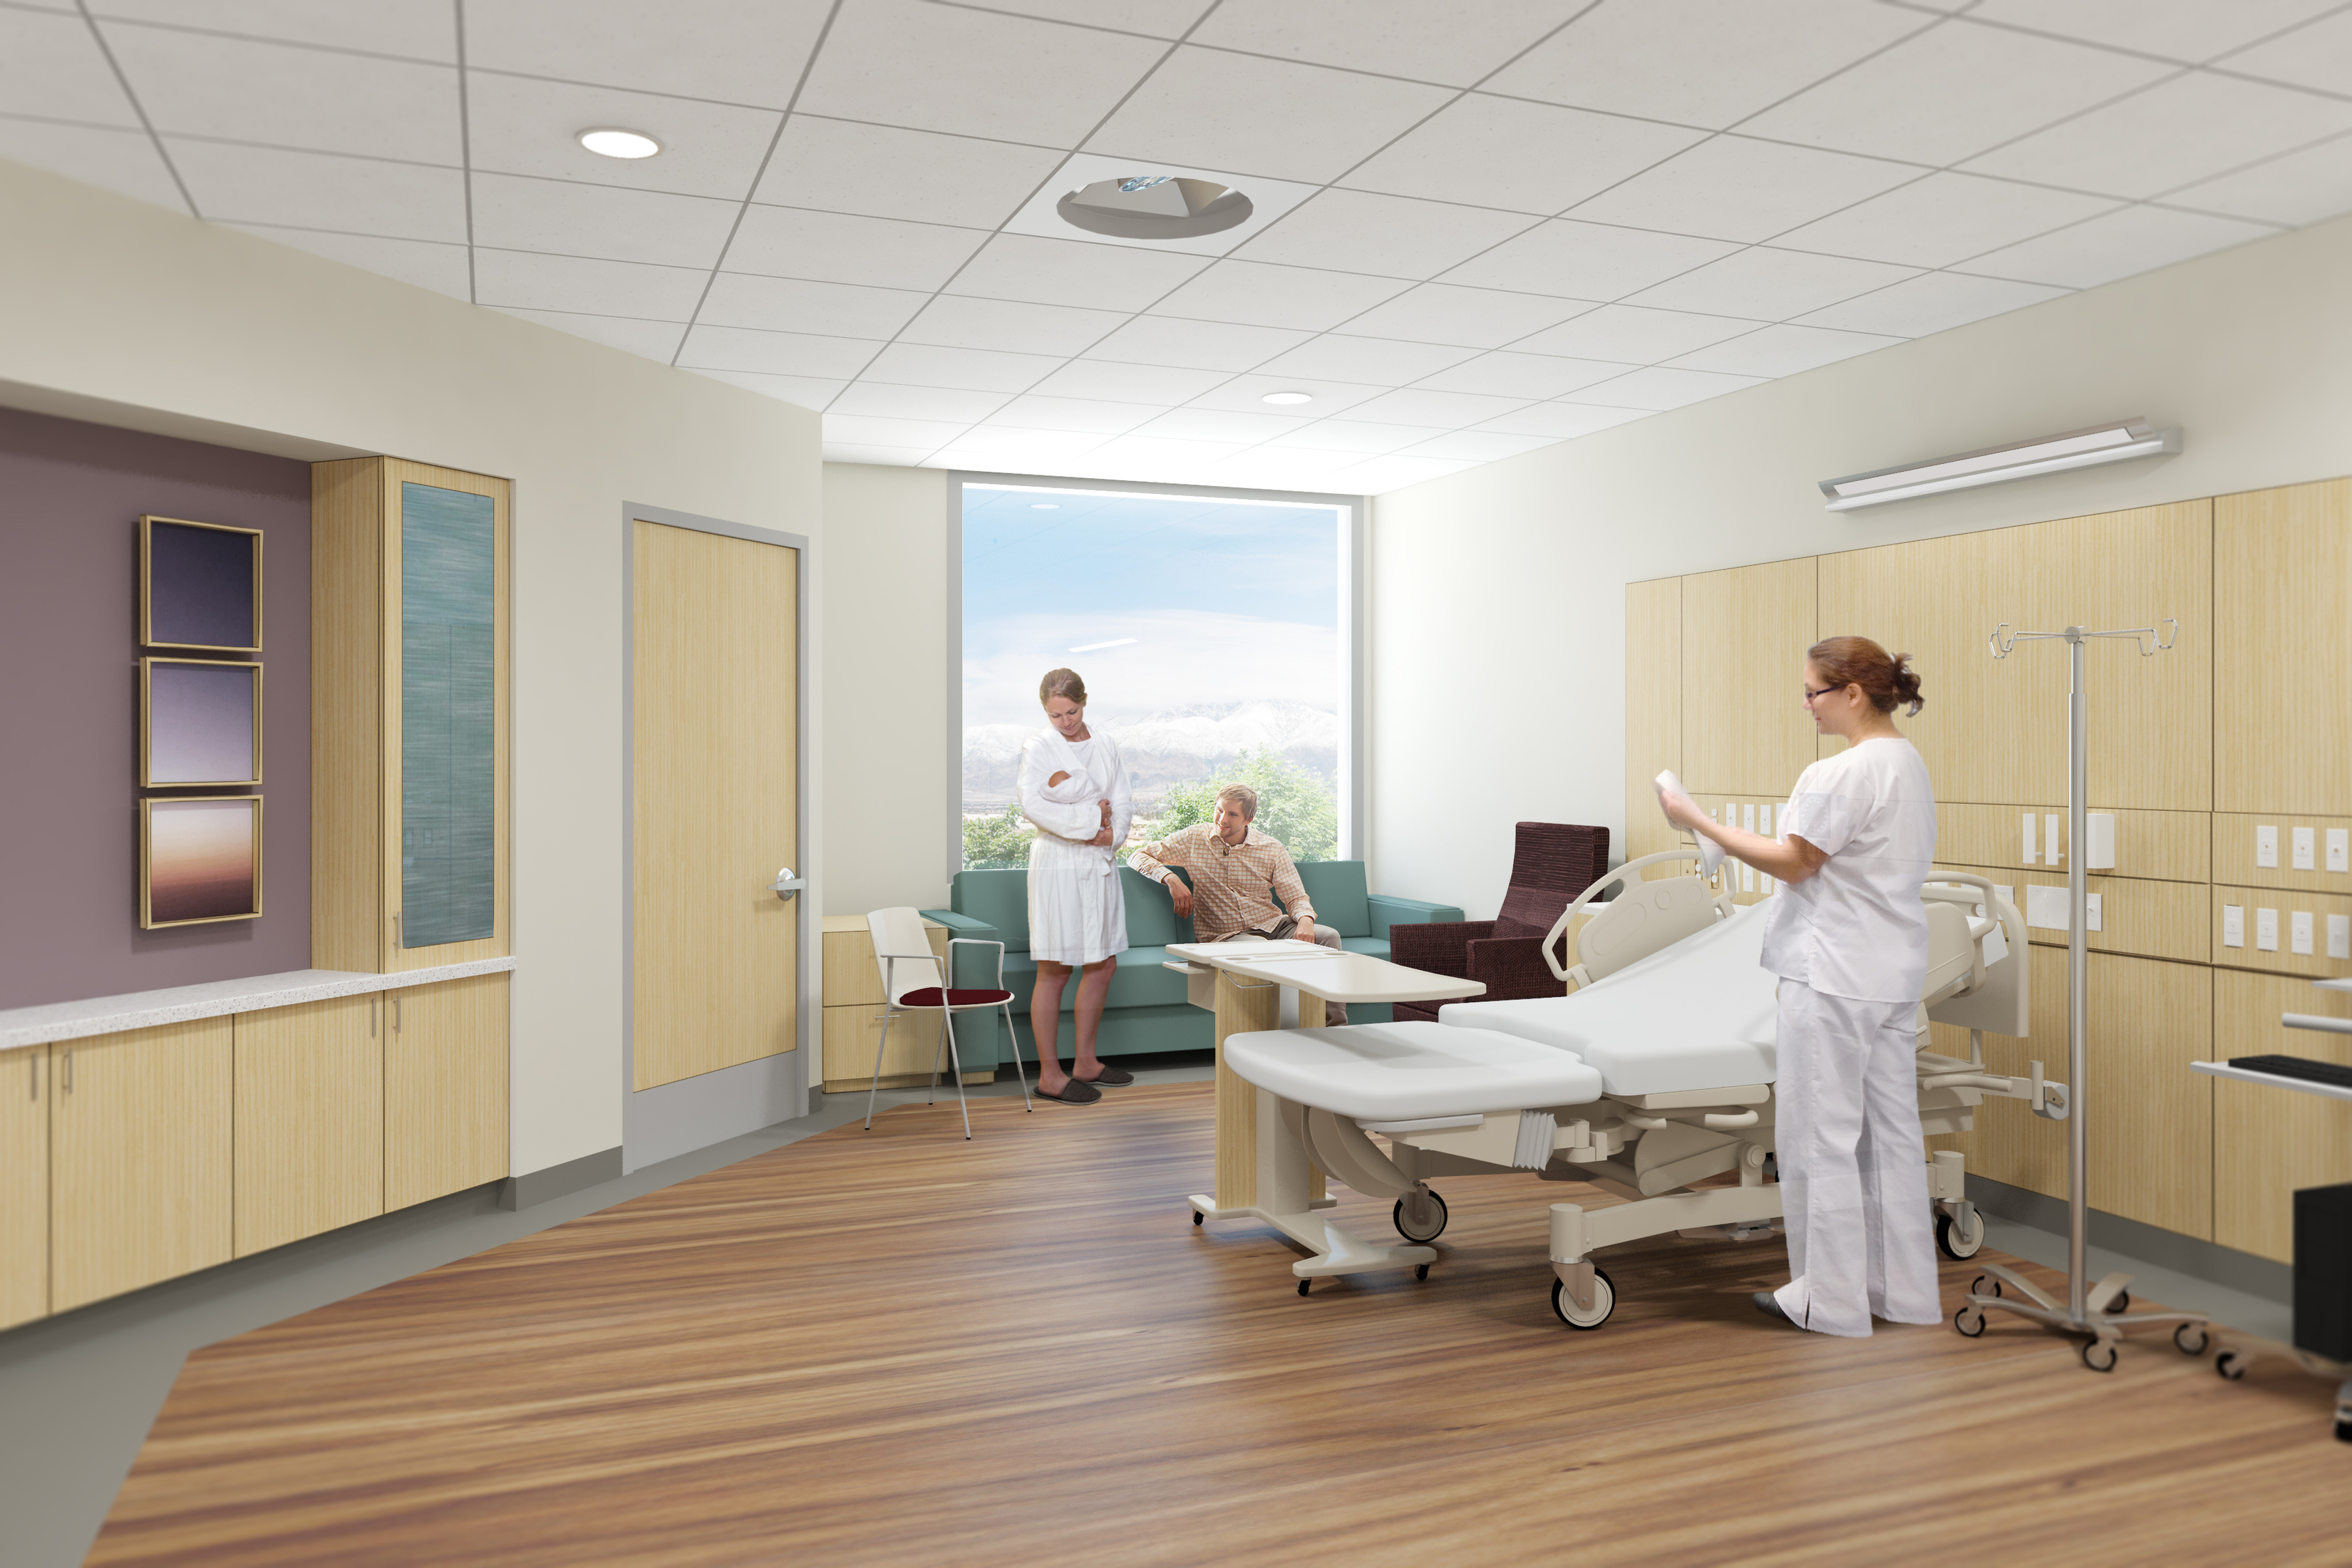 Hospital Room Design Strategies To Increase Staff Efficiency And Effectiveness Thought Leadership Hmc Architects See more ideas about hospital room, hospital, hospital design. hospital room design strategies to